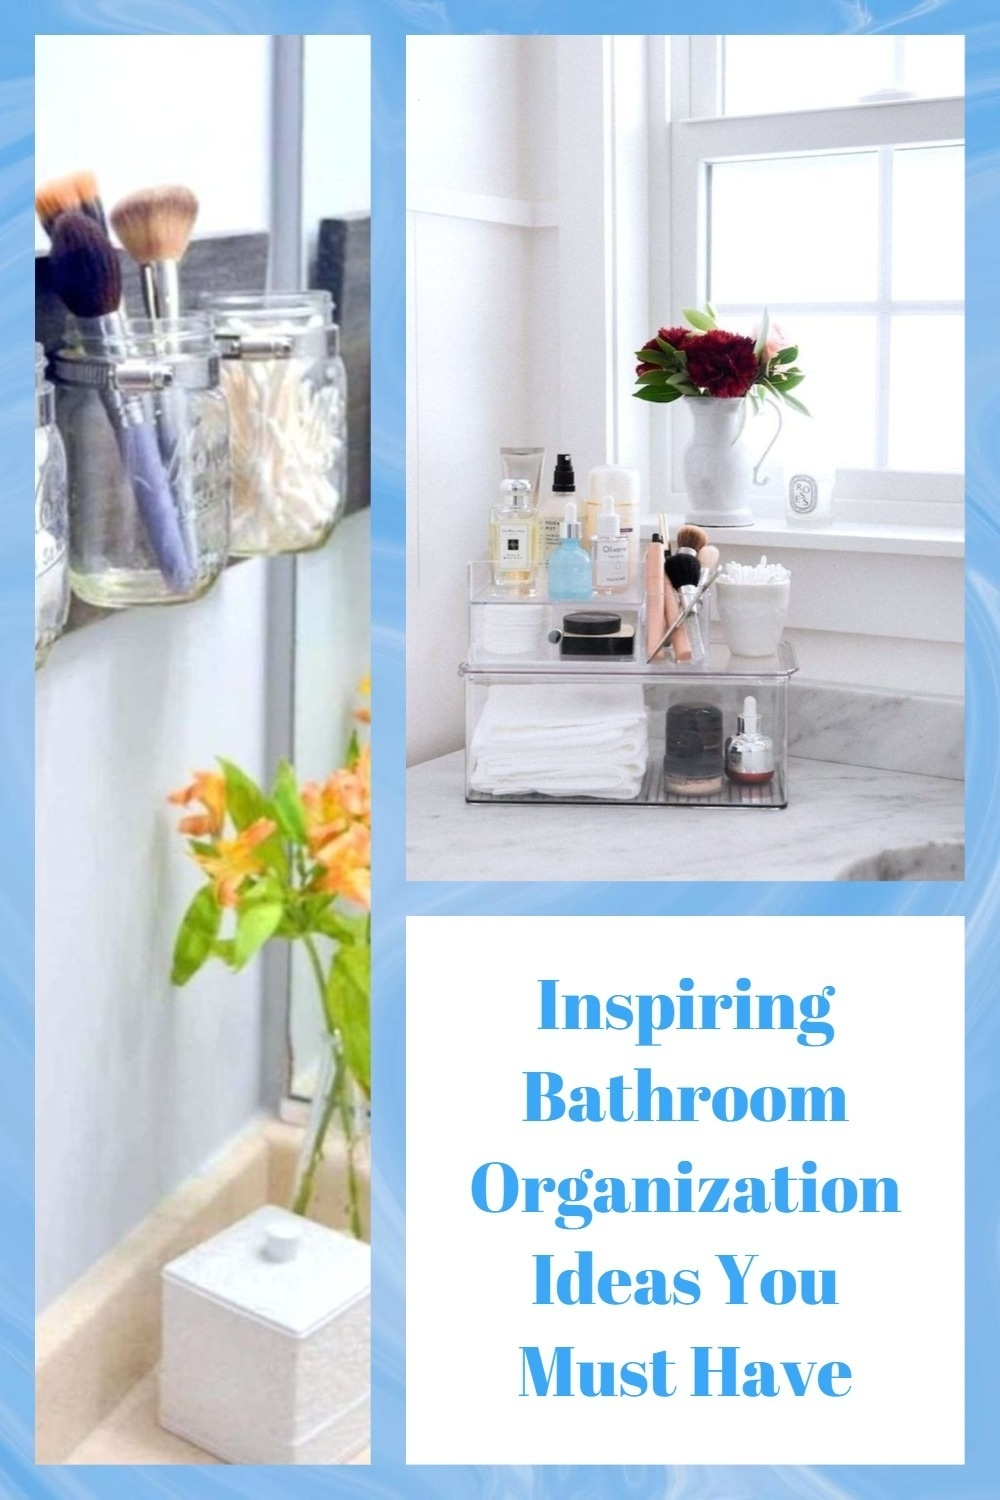 Inspiring Bathroom Organization Ideas You Must Have